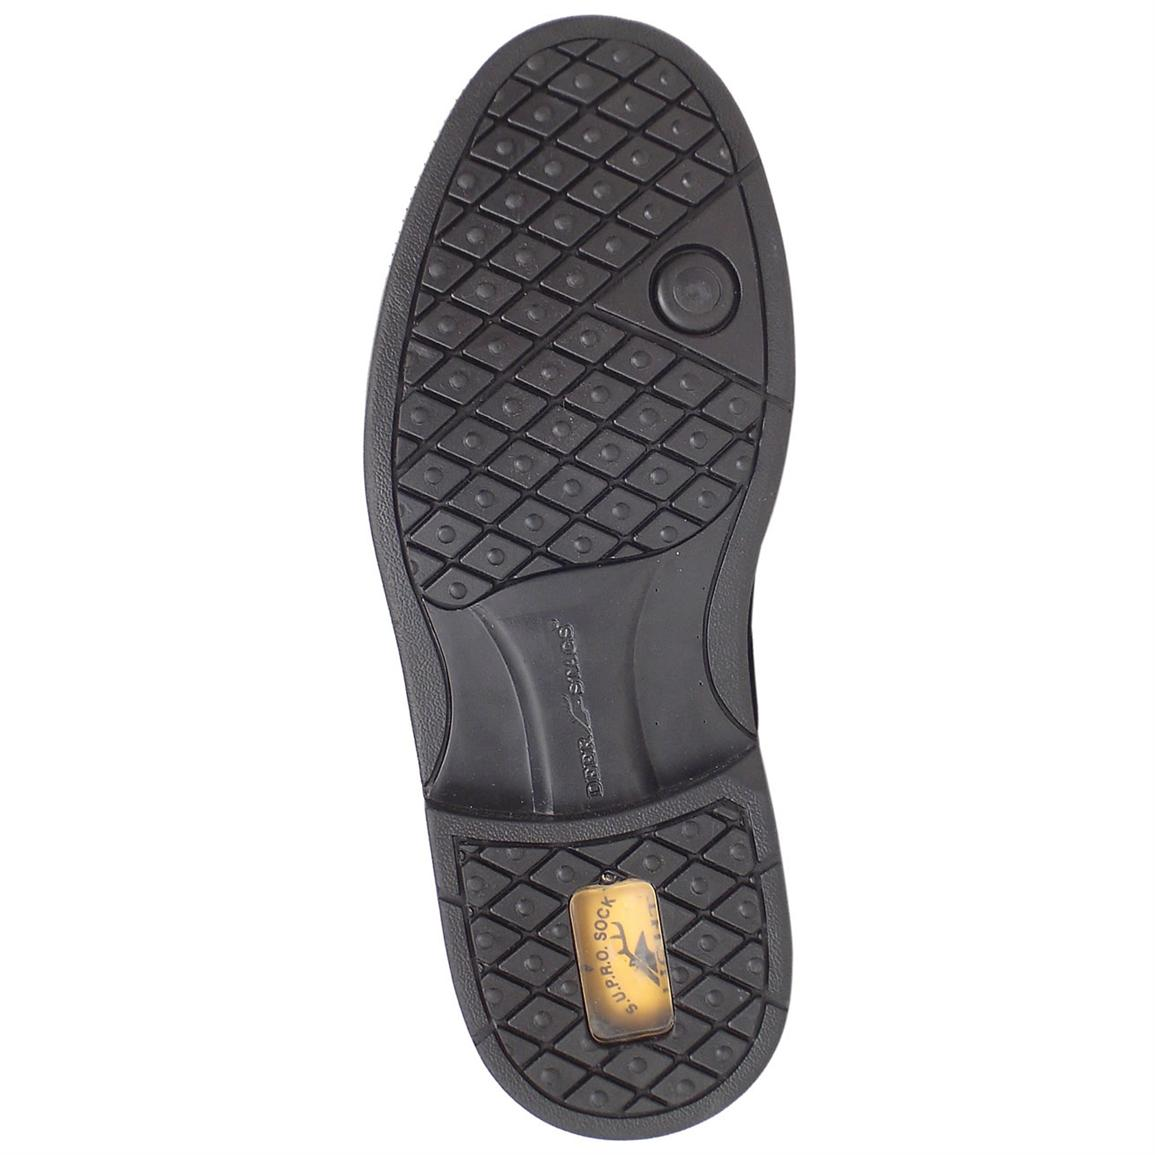 TPR outsole for grip